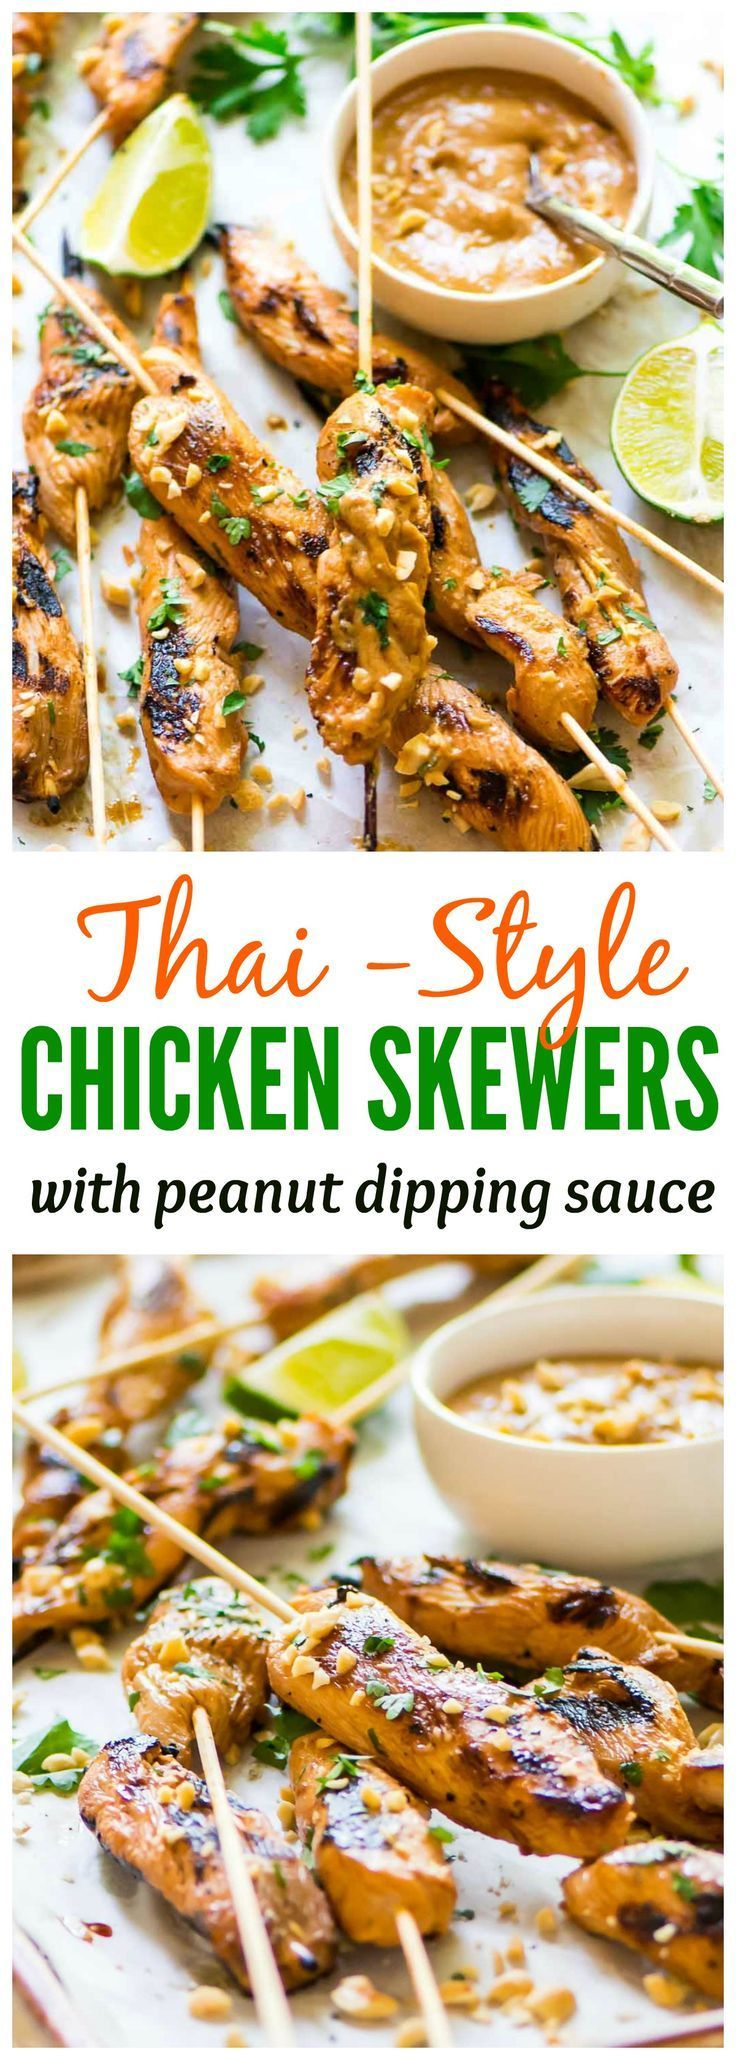 Thai Chicken Skewers with Peanut Dipping Sauce. EASY and DELICIOUS. Perfect tailgate food for game day or a football party! Recipe at wellplated.com @wellplated